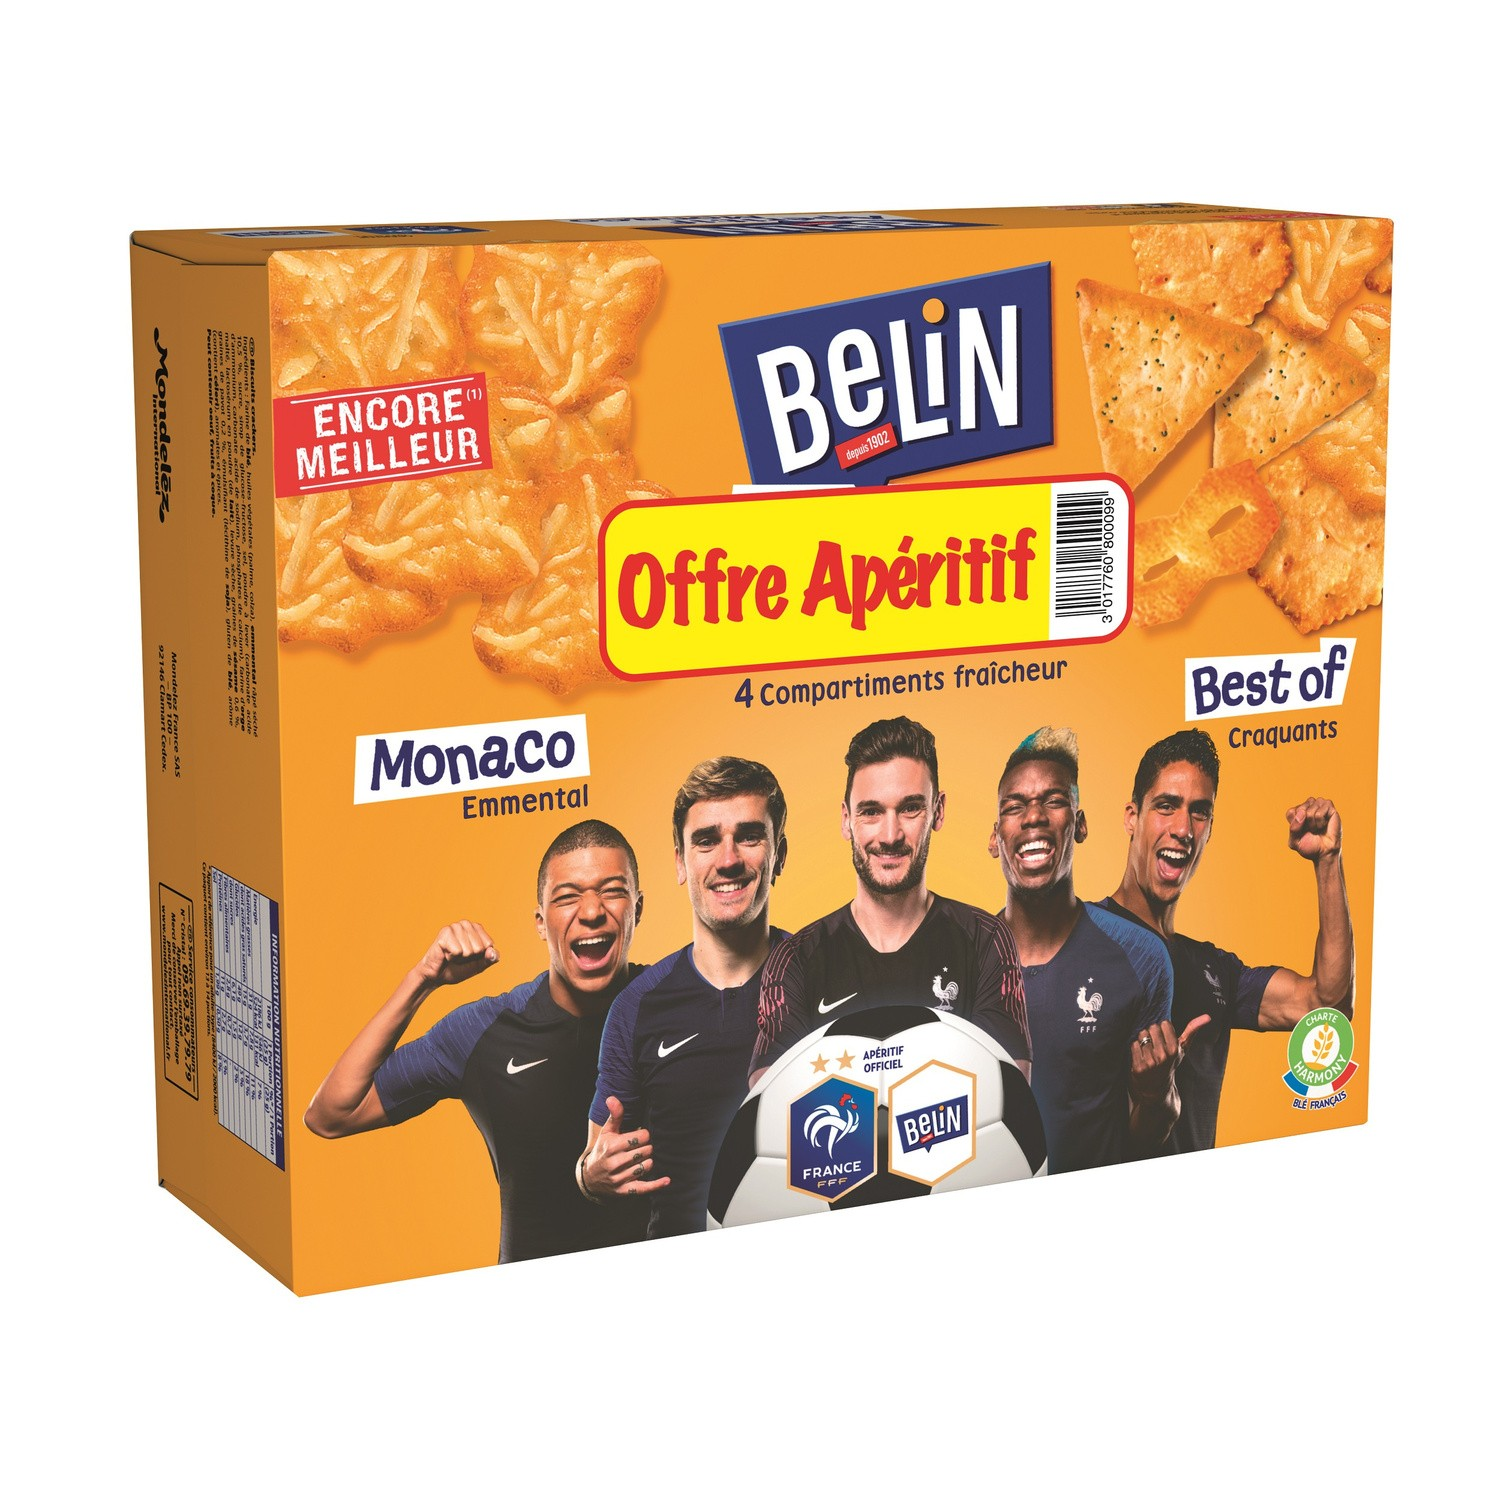 Crackers Assortiment Best of Monaco, Belin (340 g)